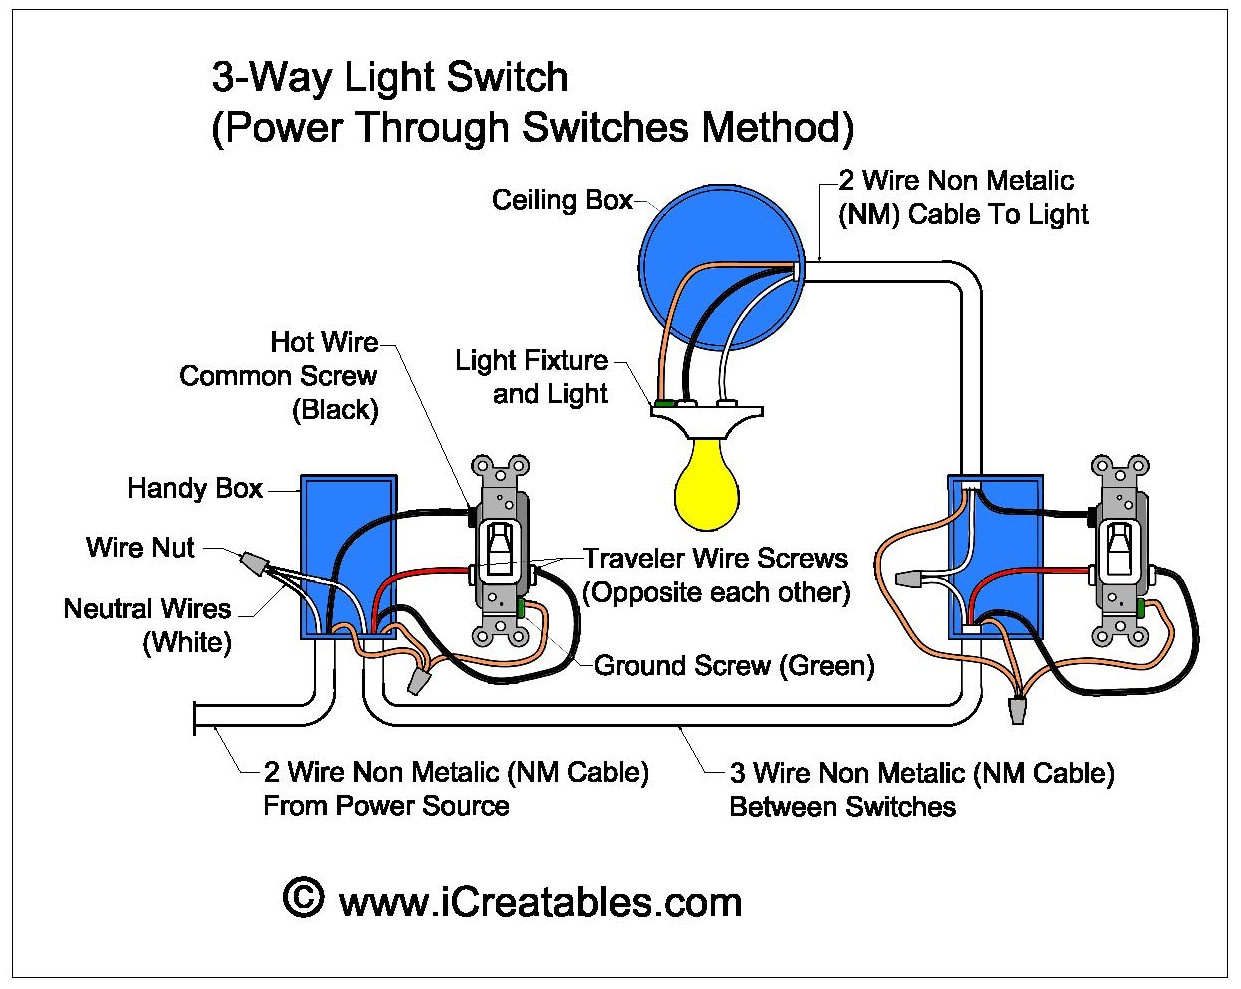 electrical wiring diagram two way switch images two way light wire a three way switch in your backyard shed or basement finishing